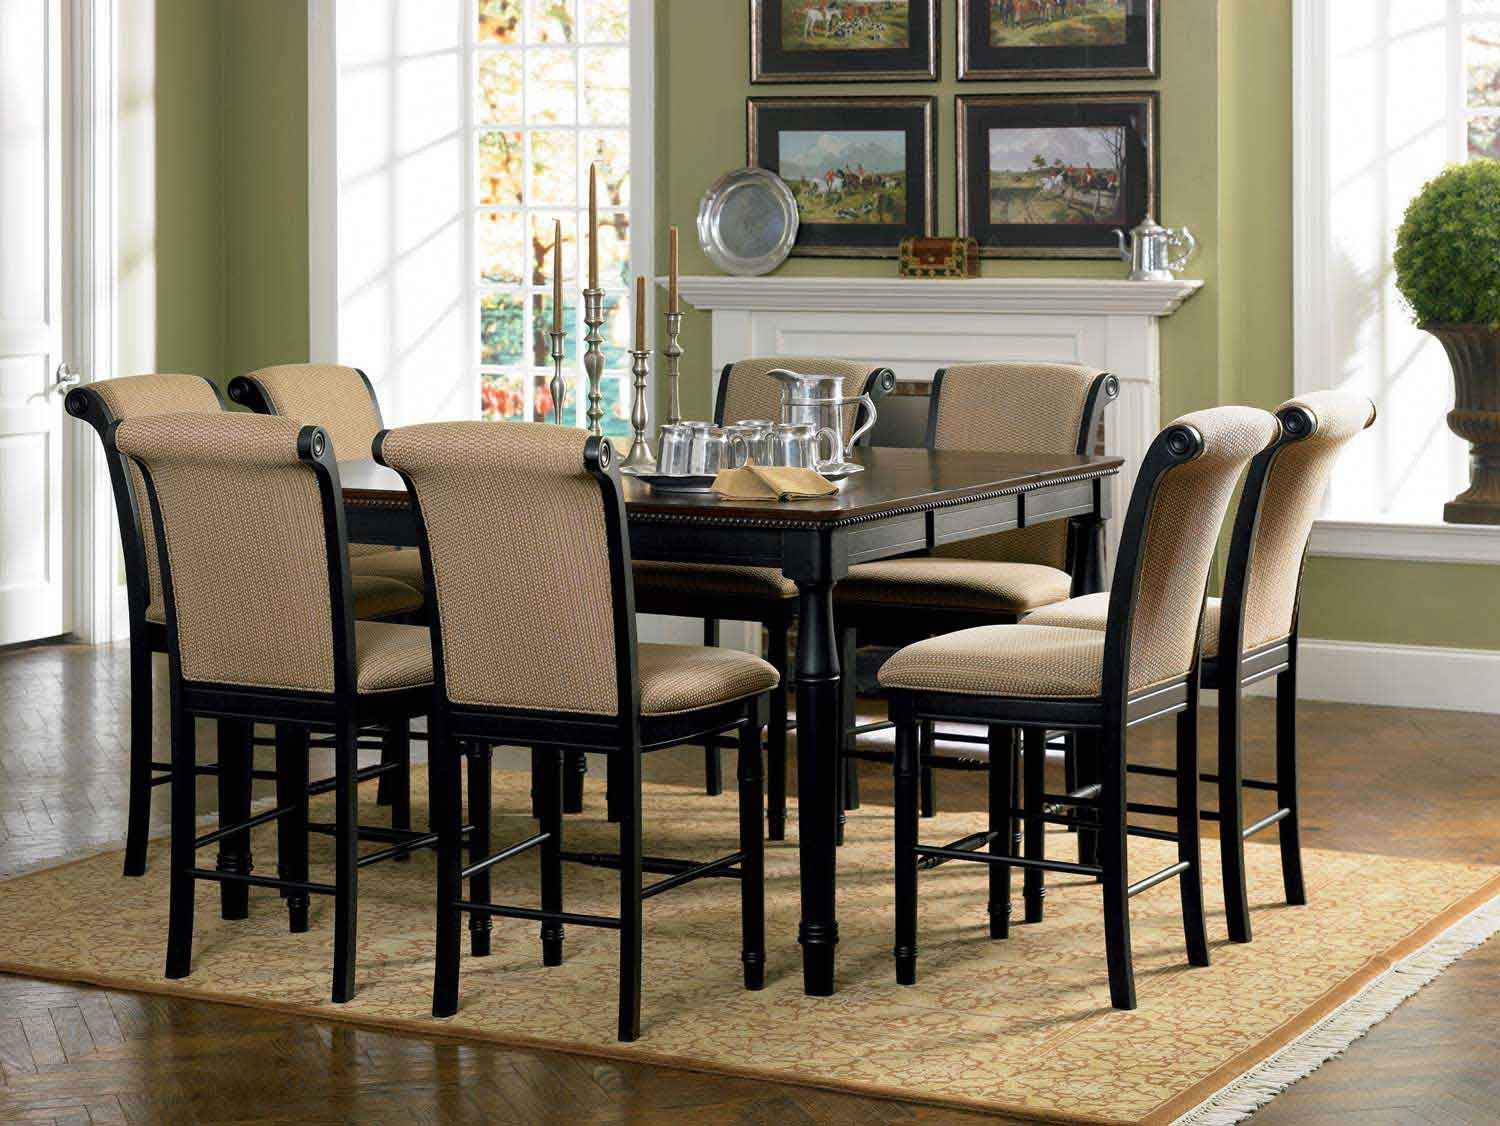 Superbe Coaster Cabrillo Counter Height Dining Set   Black Amaretto